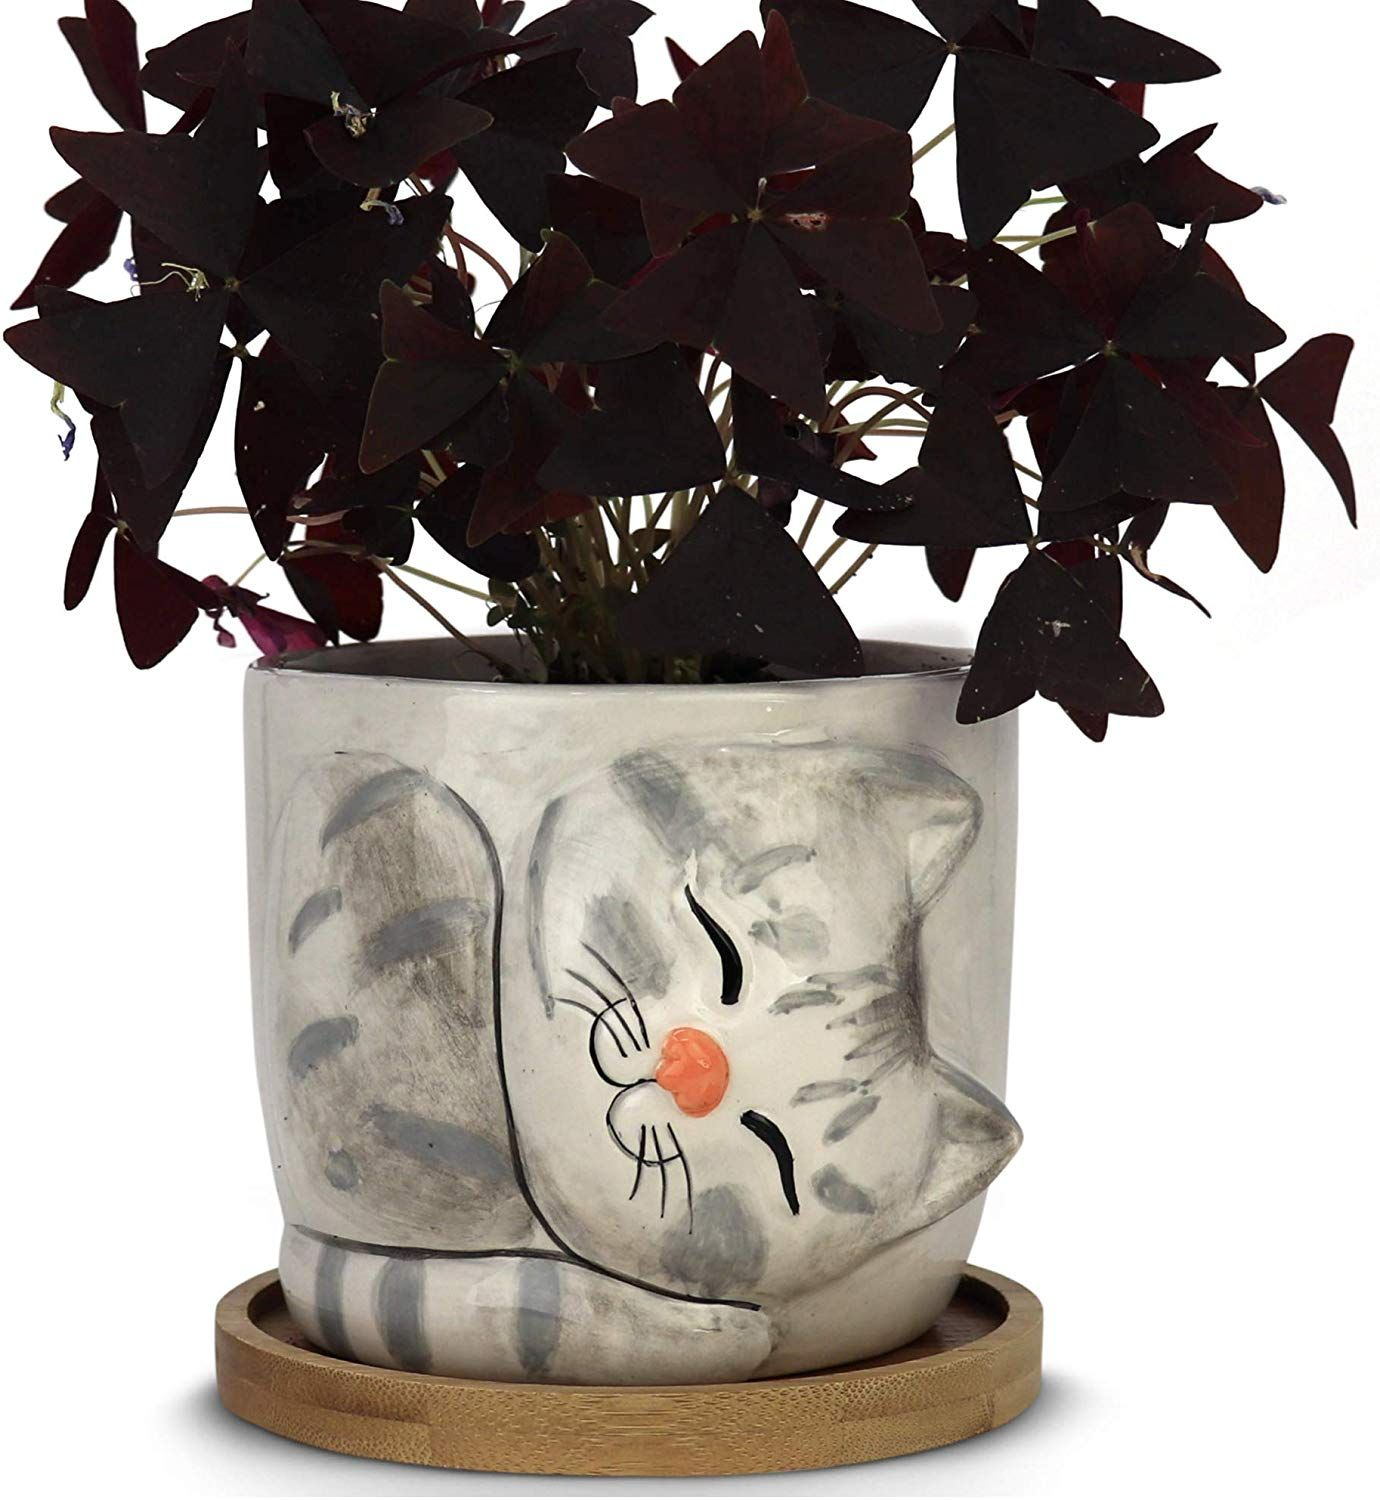 Amazon.com: Window Garden – New Large Kitty Pot (Dusty) – Purrfect for Indoor Live House Plants, Lik